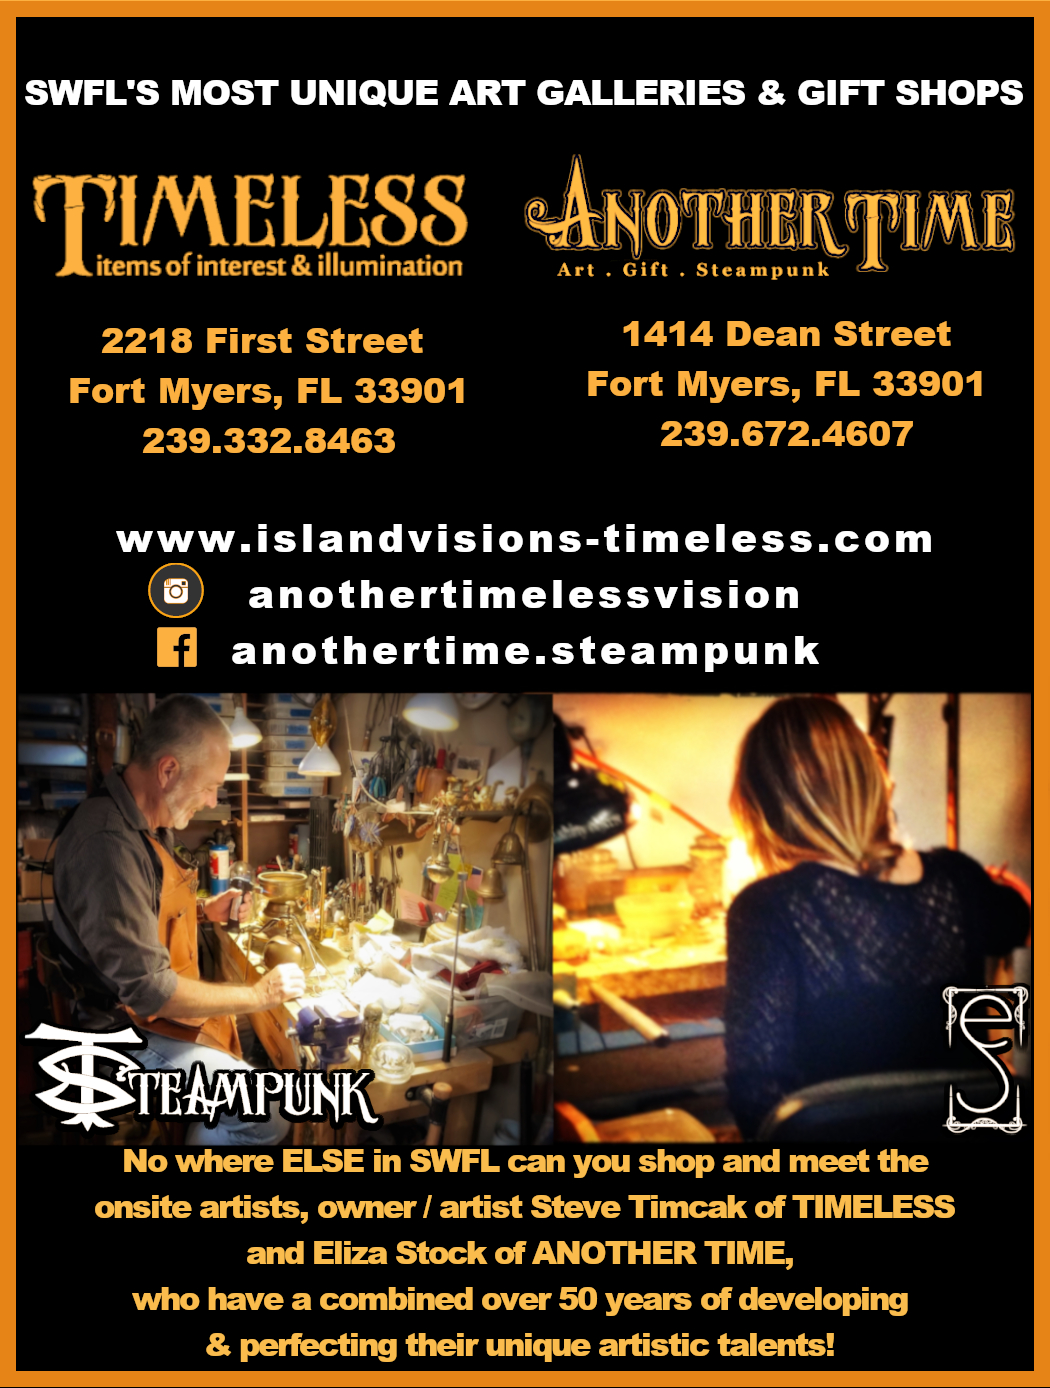 ANOTHER TIME FOR MYERS FL ART GIFT GALLE